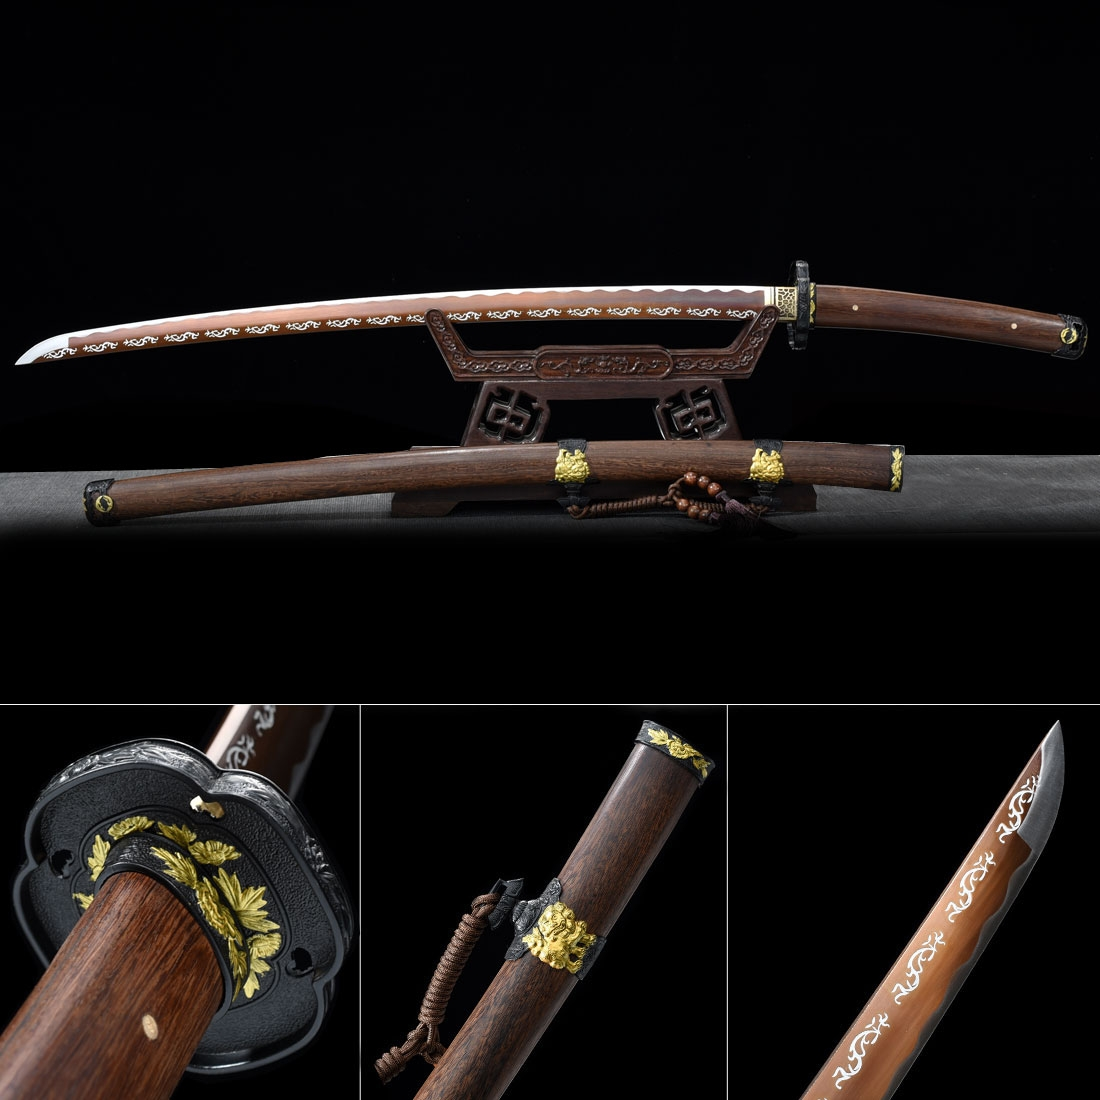 Handmade Japanese Katana Sword Spring Steel Full Tang With Brown Blade And Scabbard